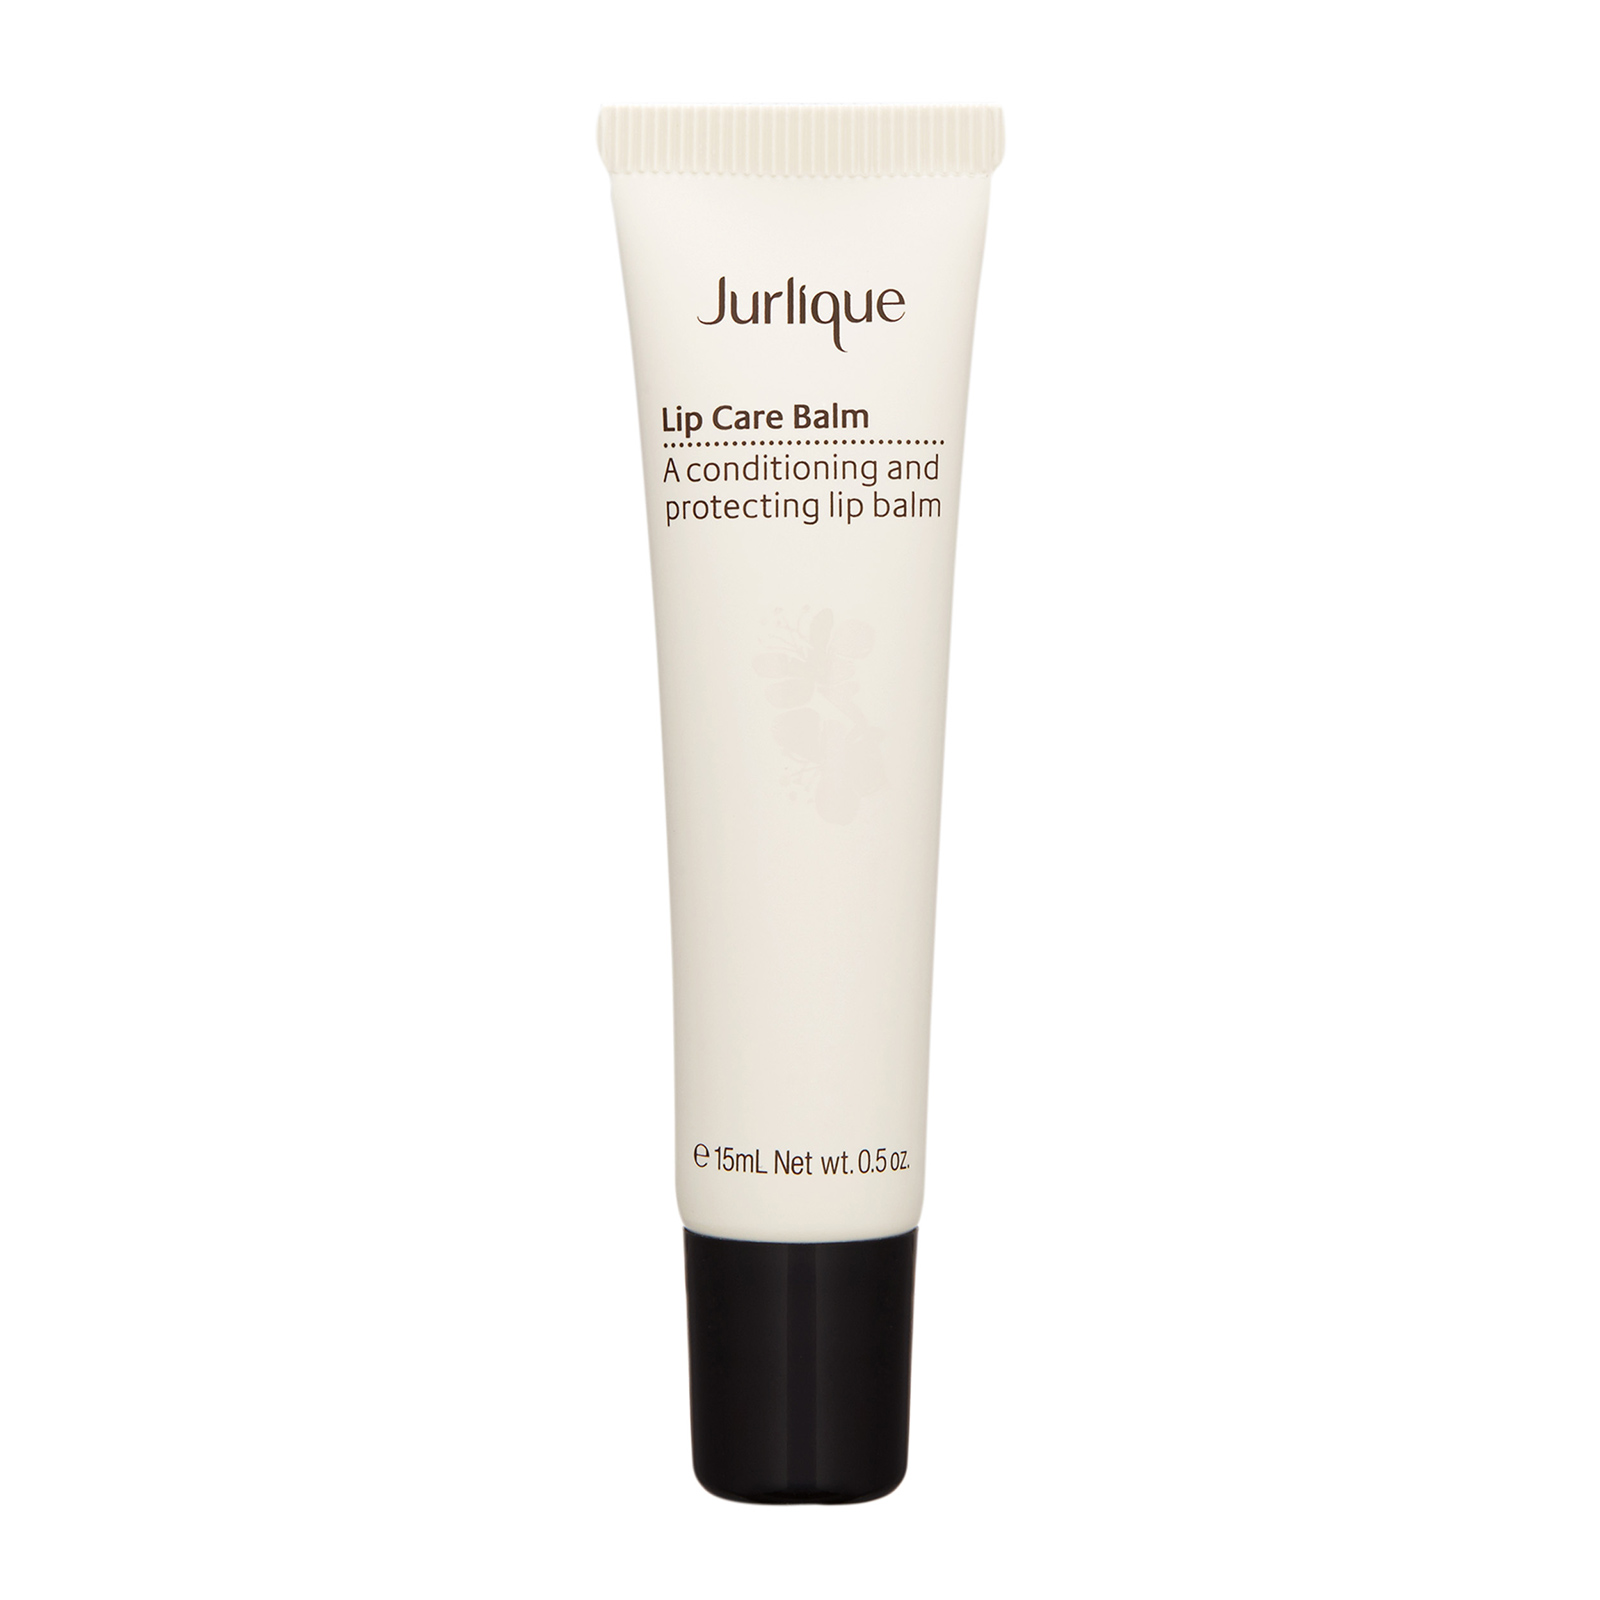 Jurlique  Lip Care Balm 0.5oz, 15ml from Cosme-De.com